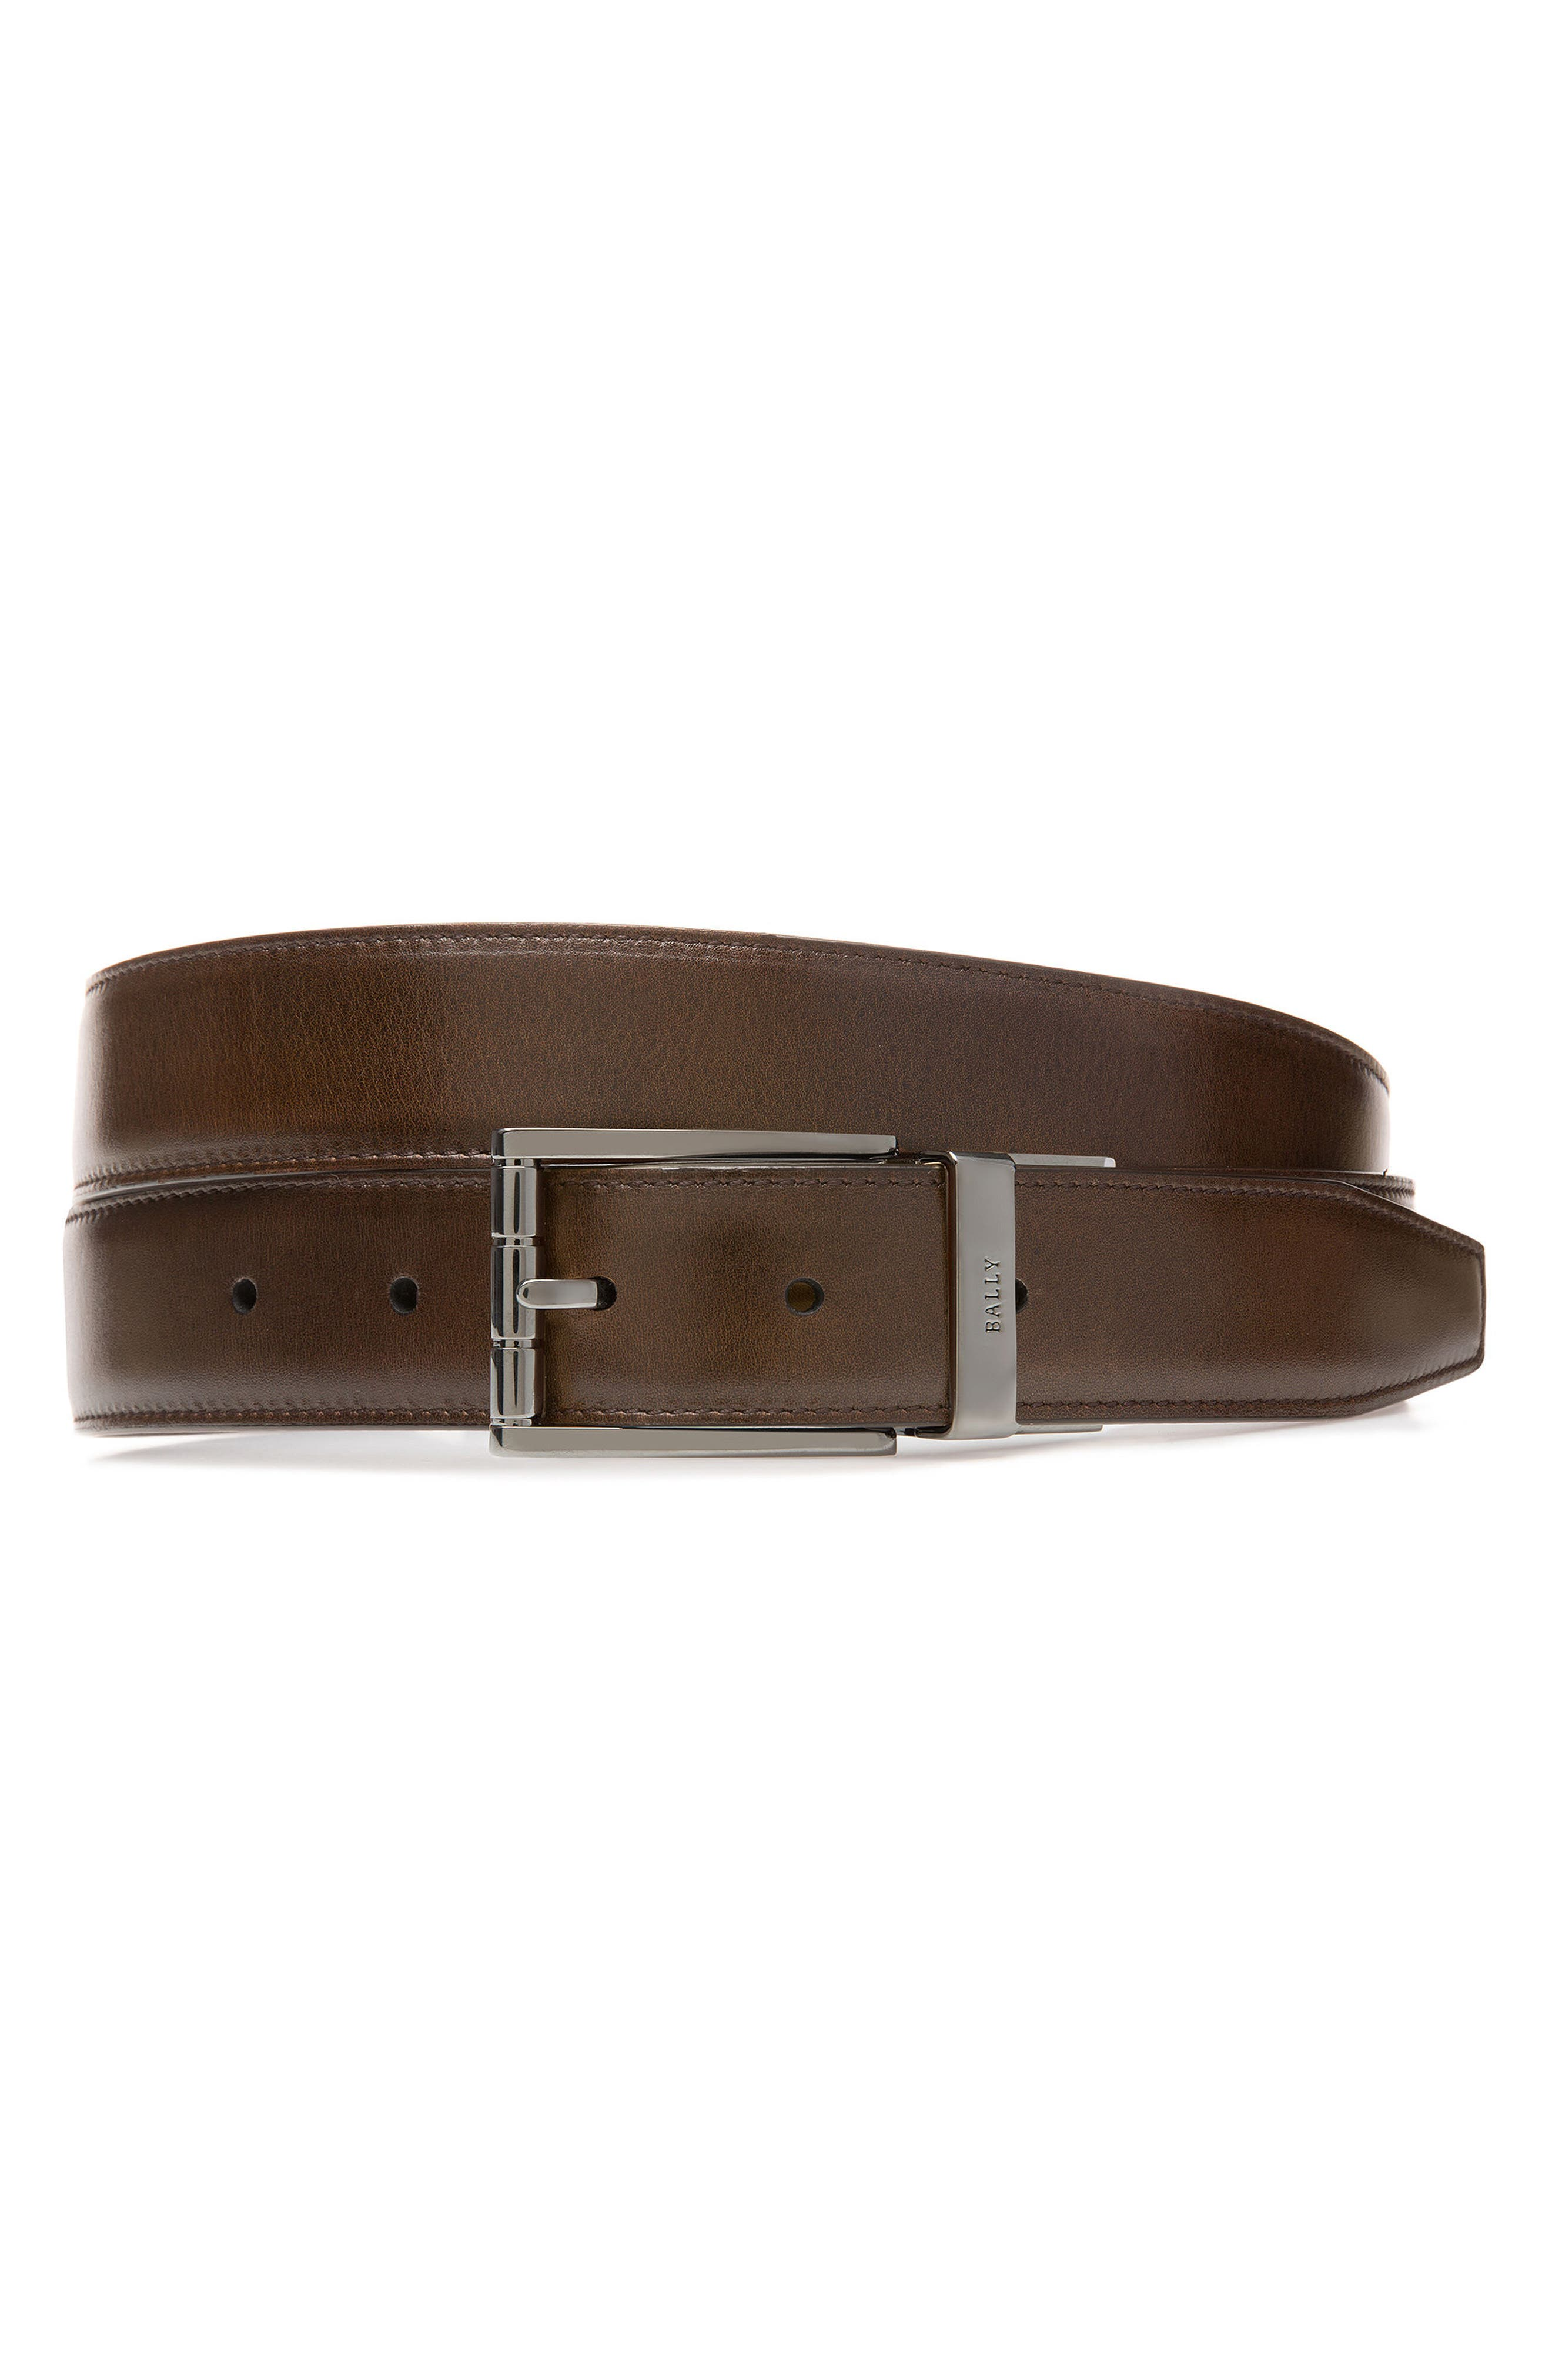 BALLY Astor Reversible Leather Belt, Main, color, MID BROWN